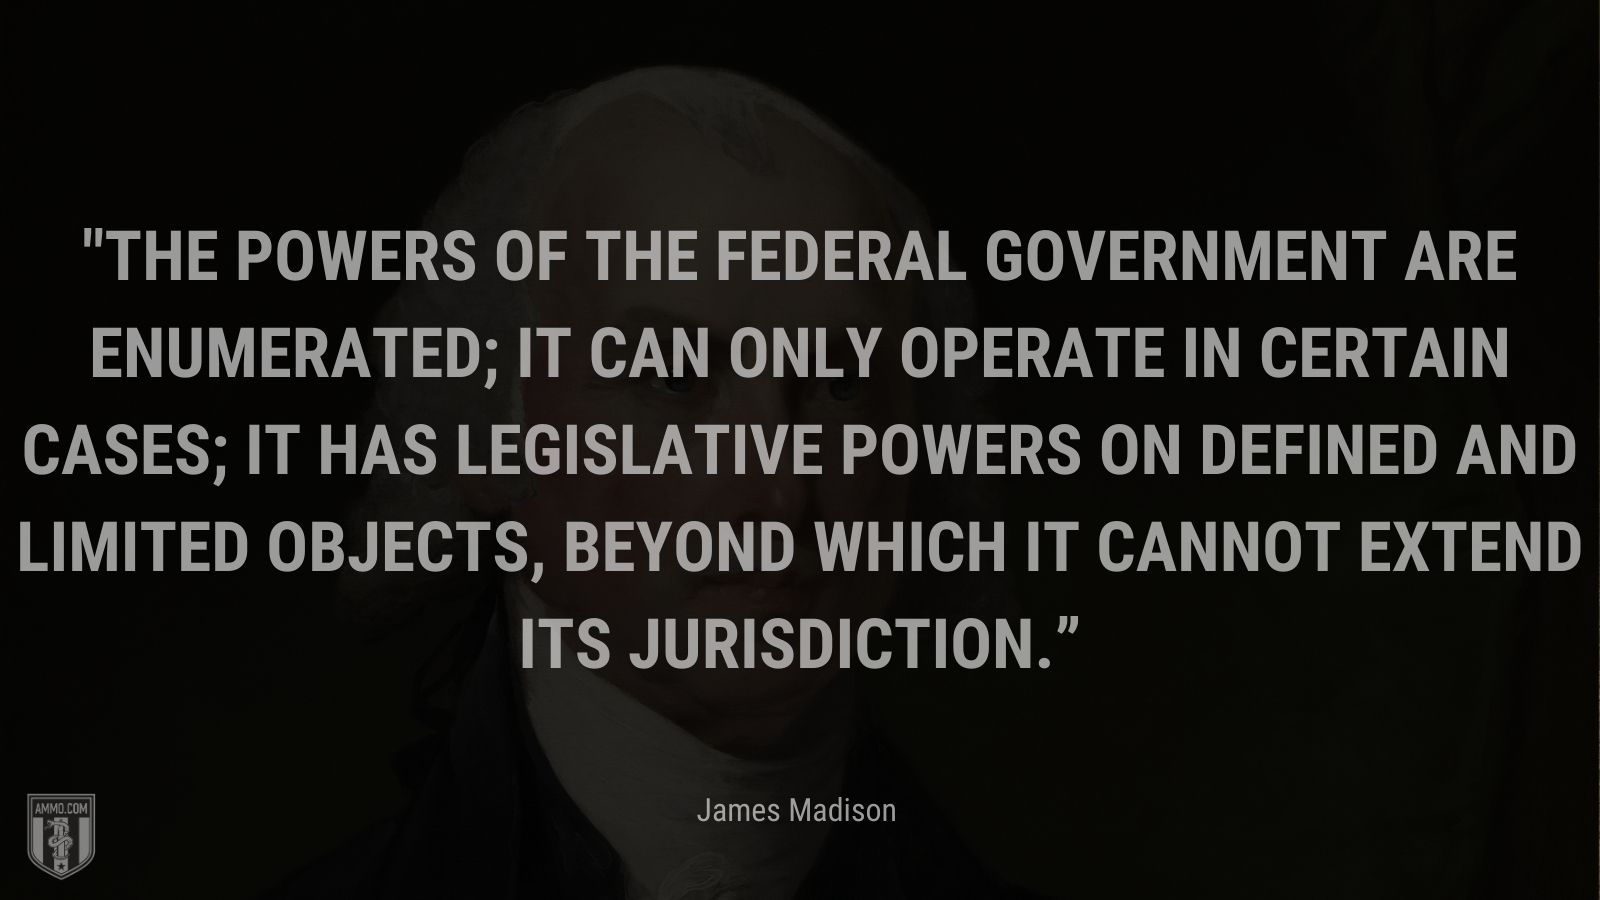 """""""The powers of the federal government are enumerated; it can only operate in certain cases; it has legislative powers on defined and limited objects, beyond which it cannot extend its jurisdiction."""" - James Madison"""